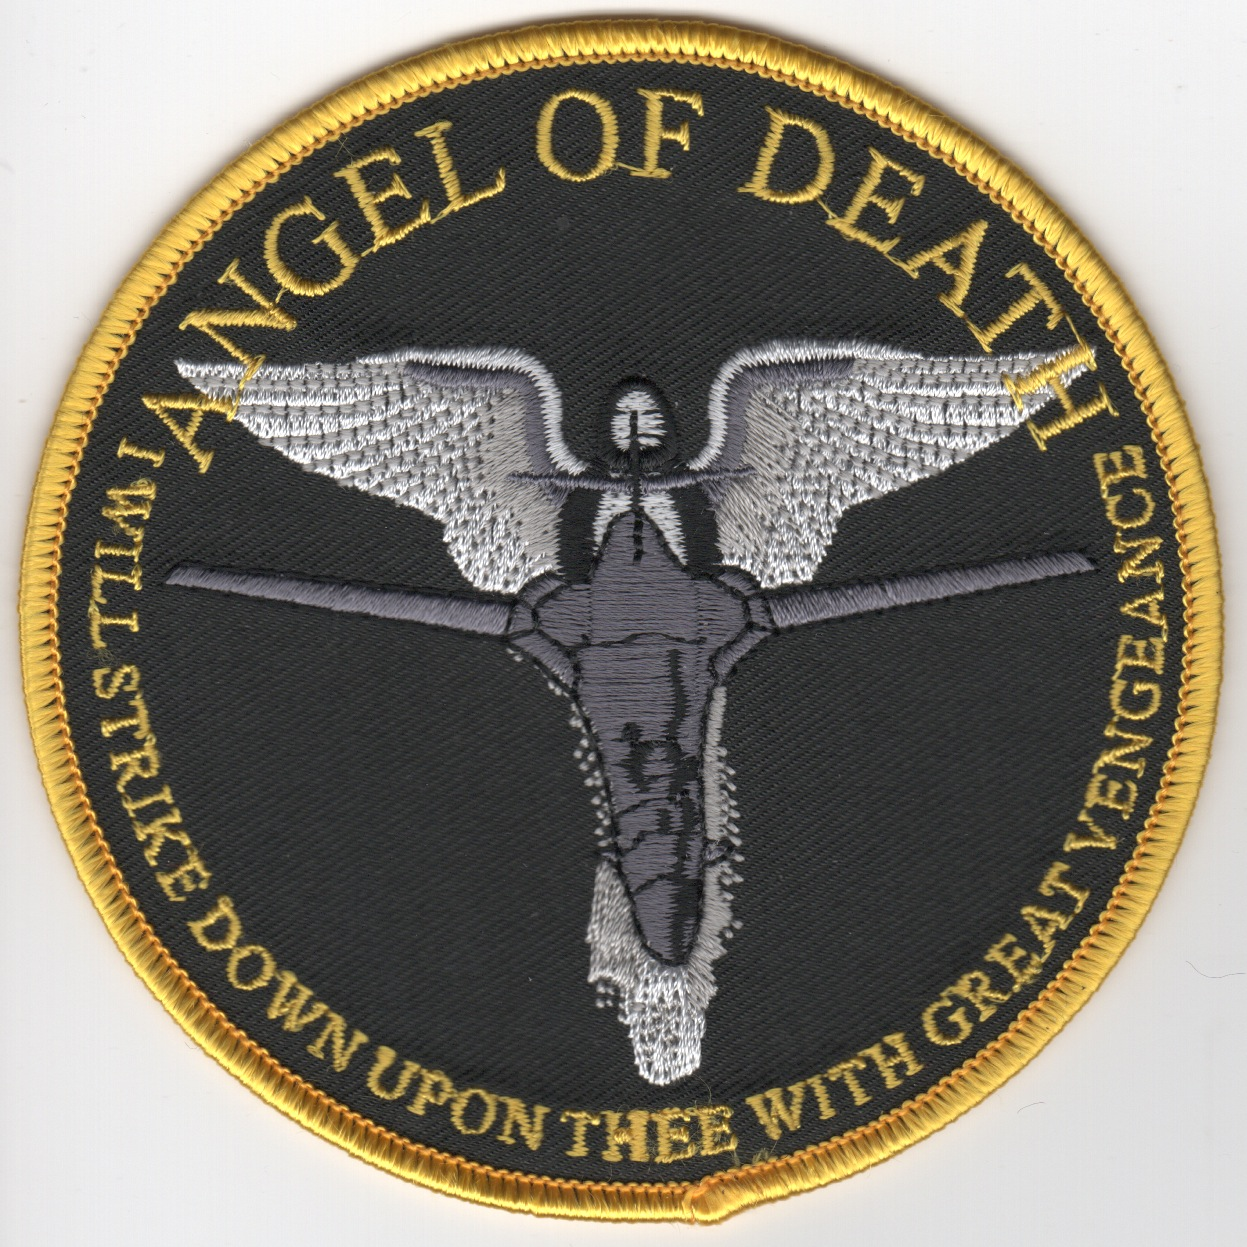 37EBS 'Angel of Death' (No Velcro)